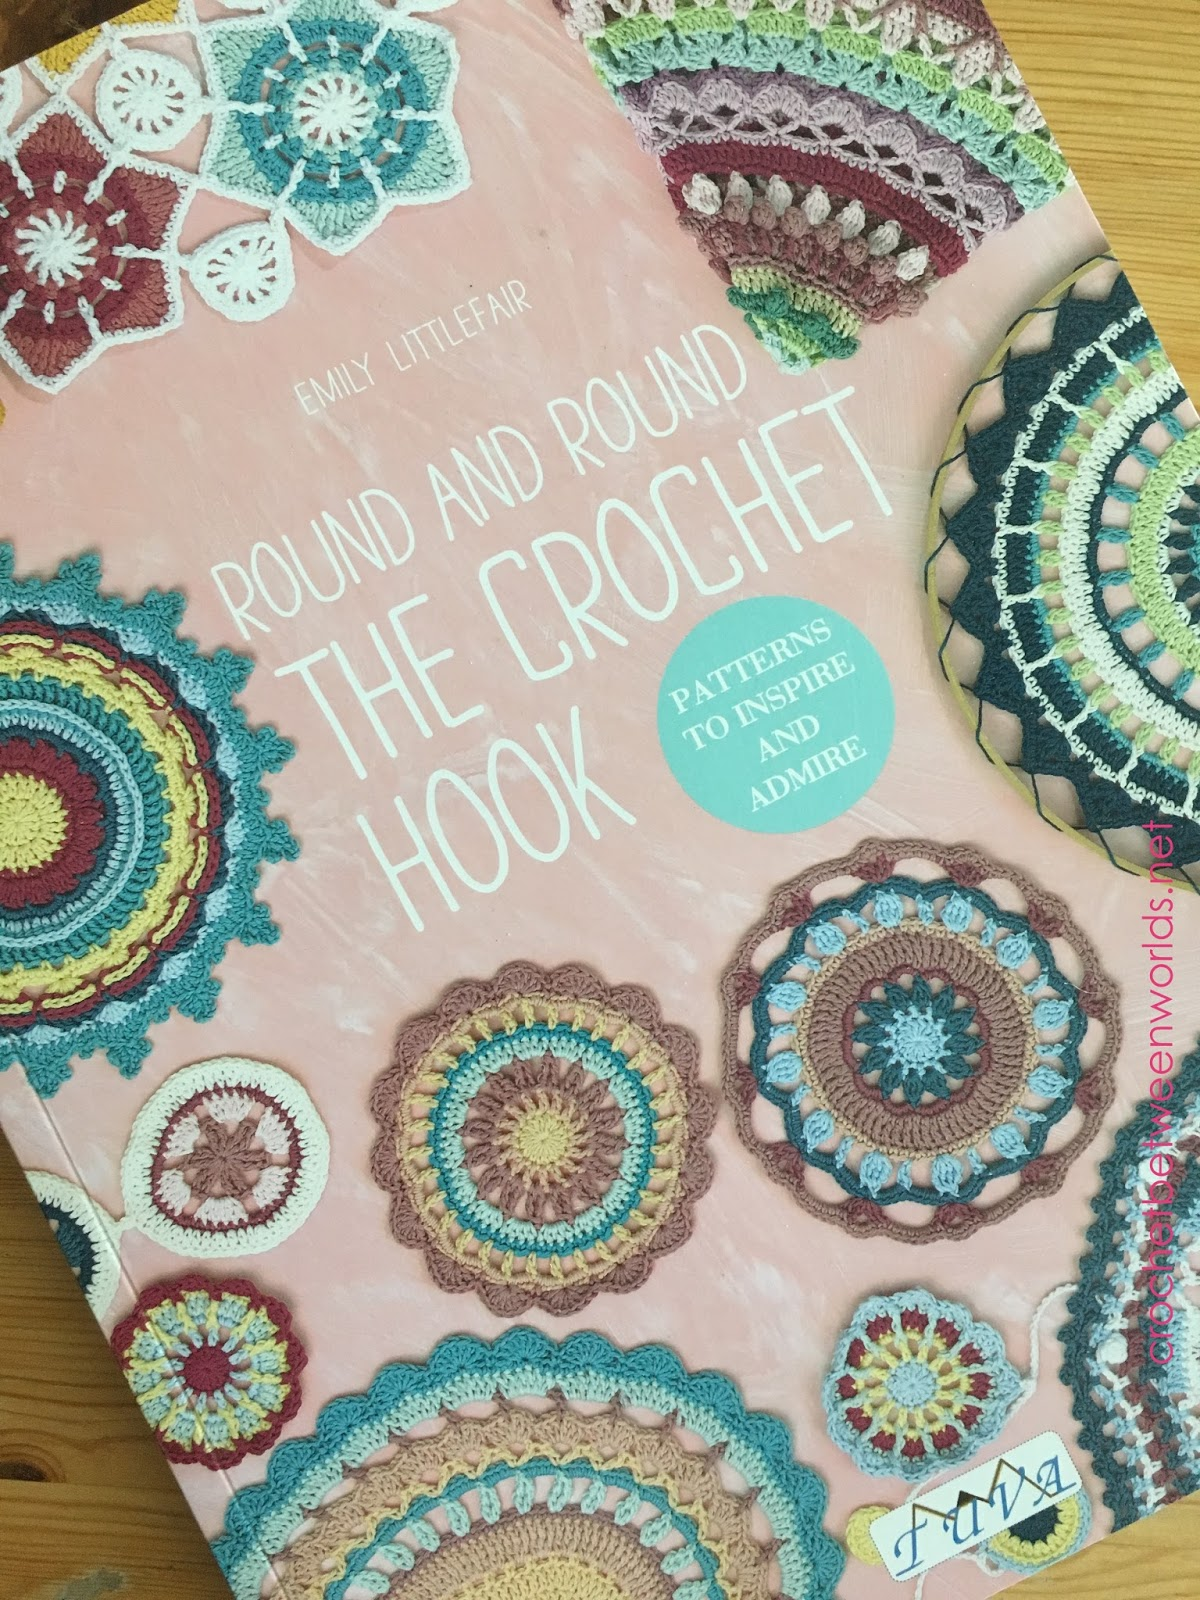 Crochet between worlds: REVIEW: Round and Round the Crochet Hook by ...